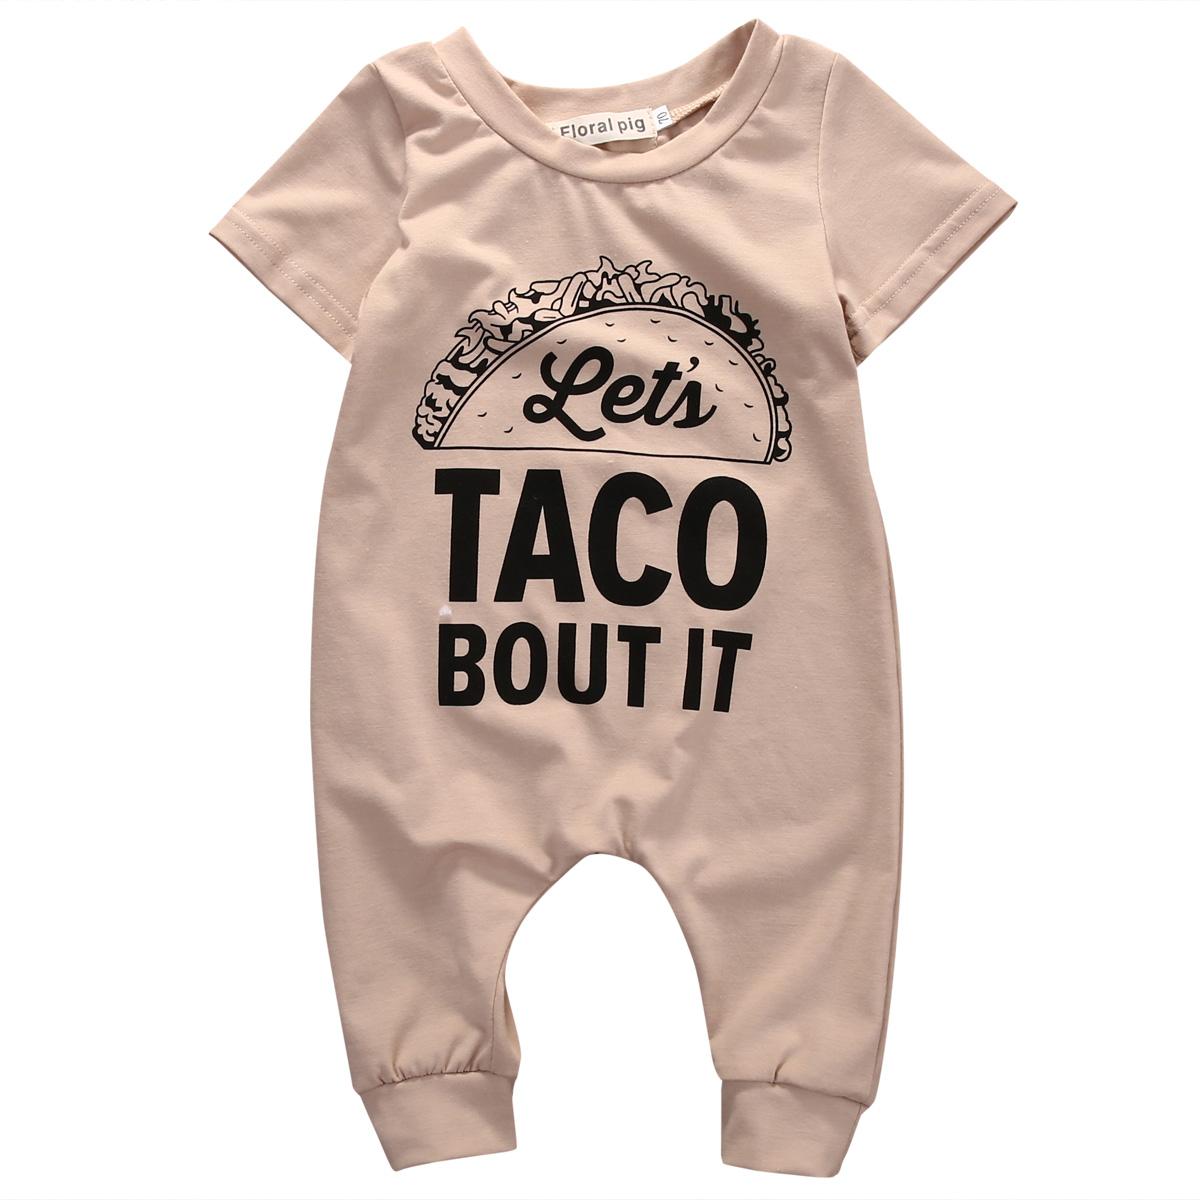 Kids Newborn Toddler Infant Baby Boys Girls Short Sleeve Romper Jumpsuit Cotton Clothes Sets 0-18M 2017 lovely newborn baby rompers infant bebes boys girls short sleeve printed baby clothes hooded jumpsuit costume outfit 0 18m